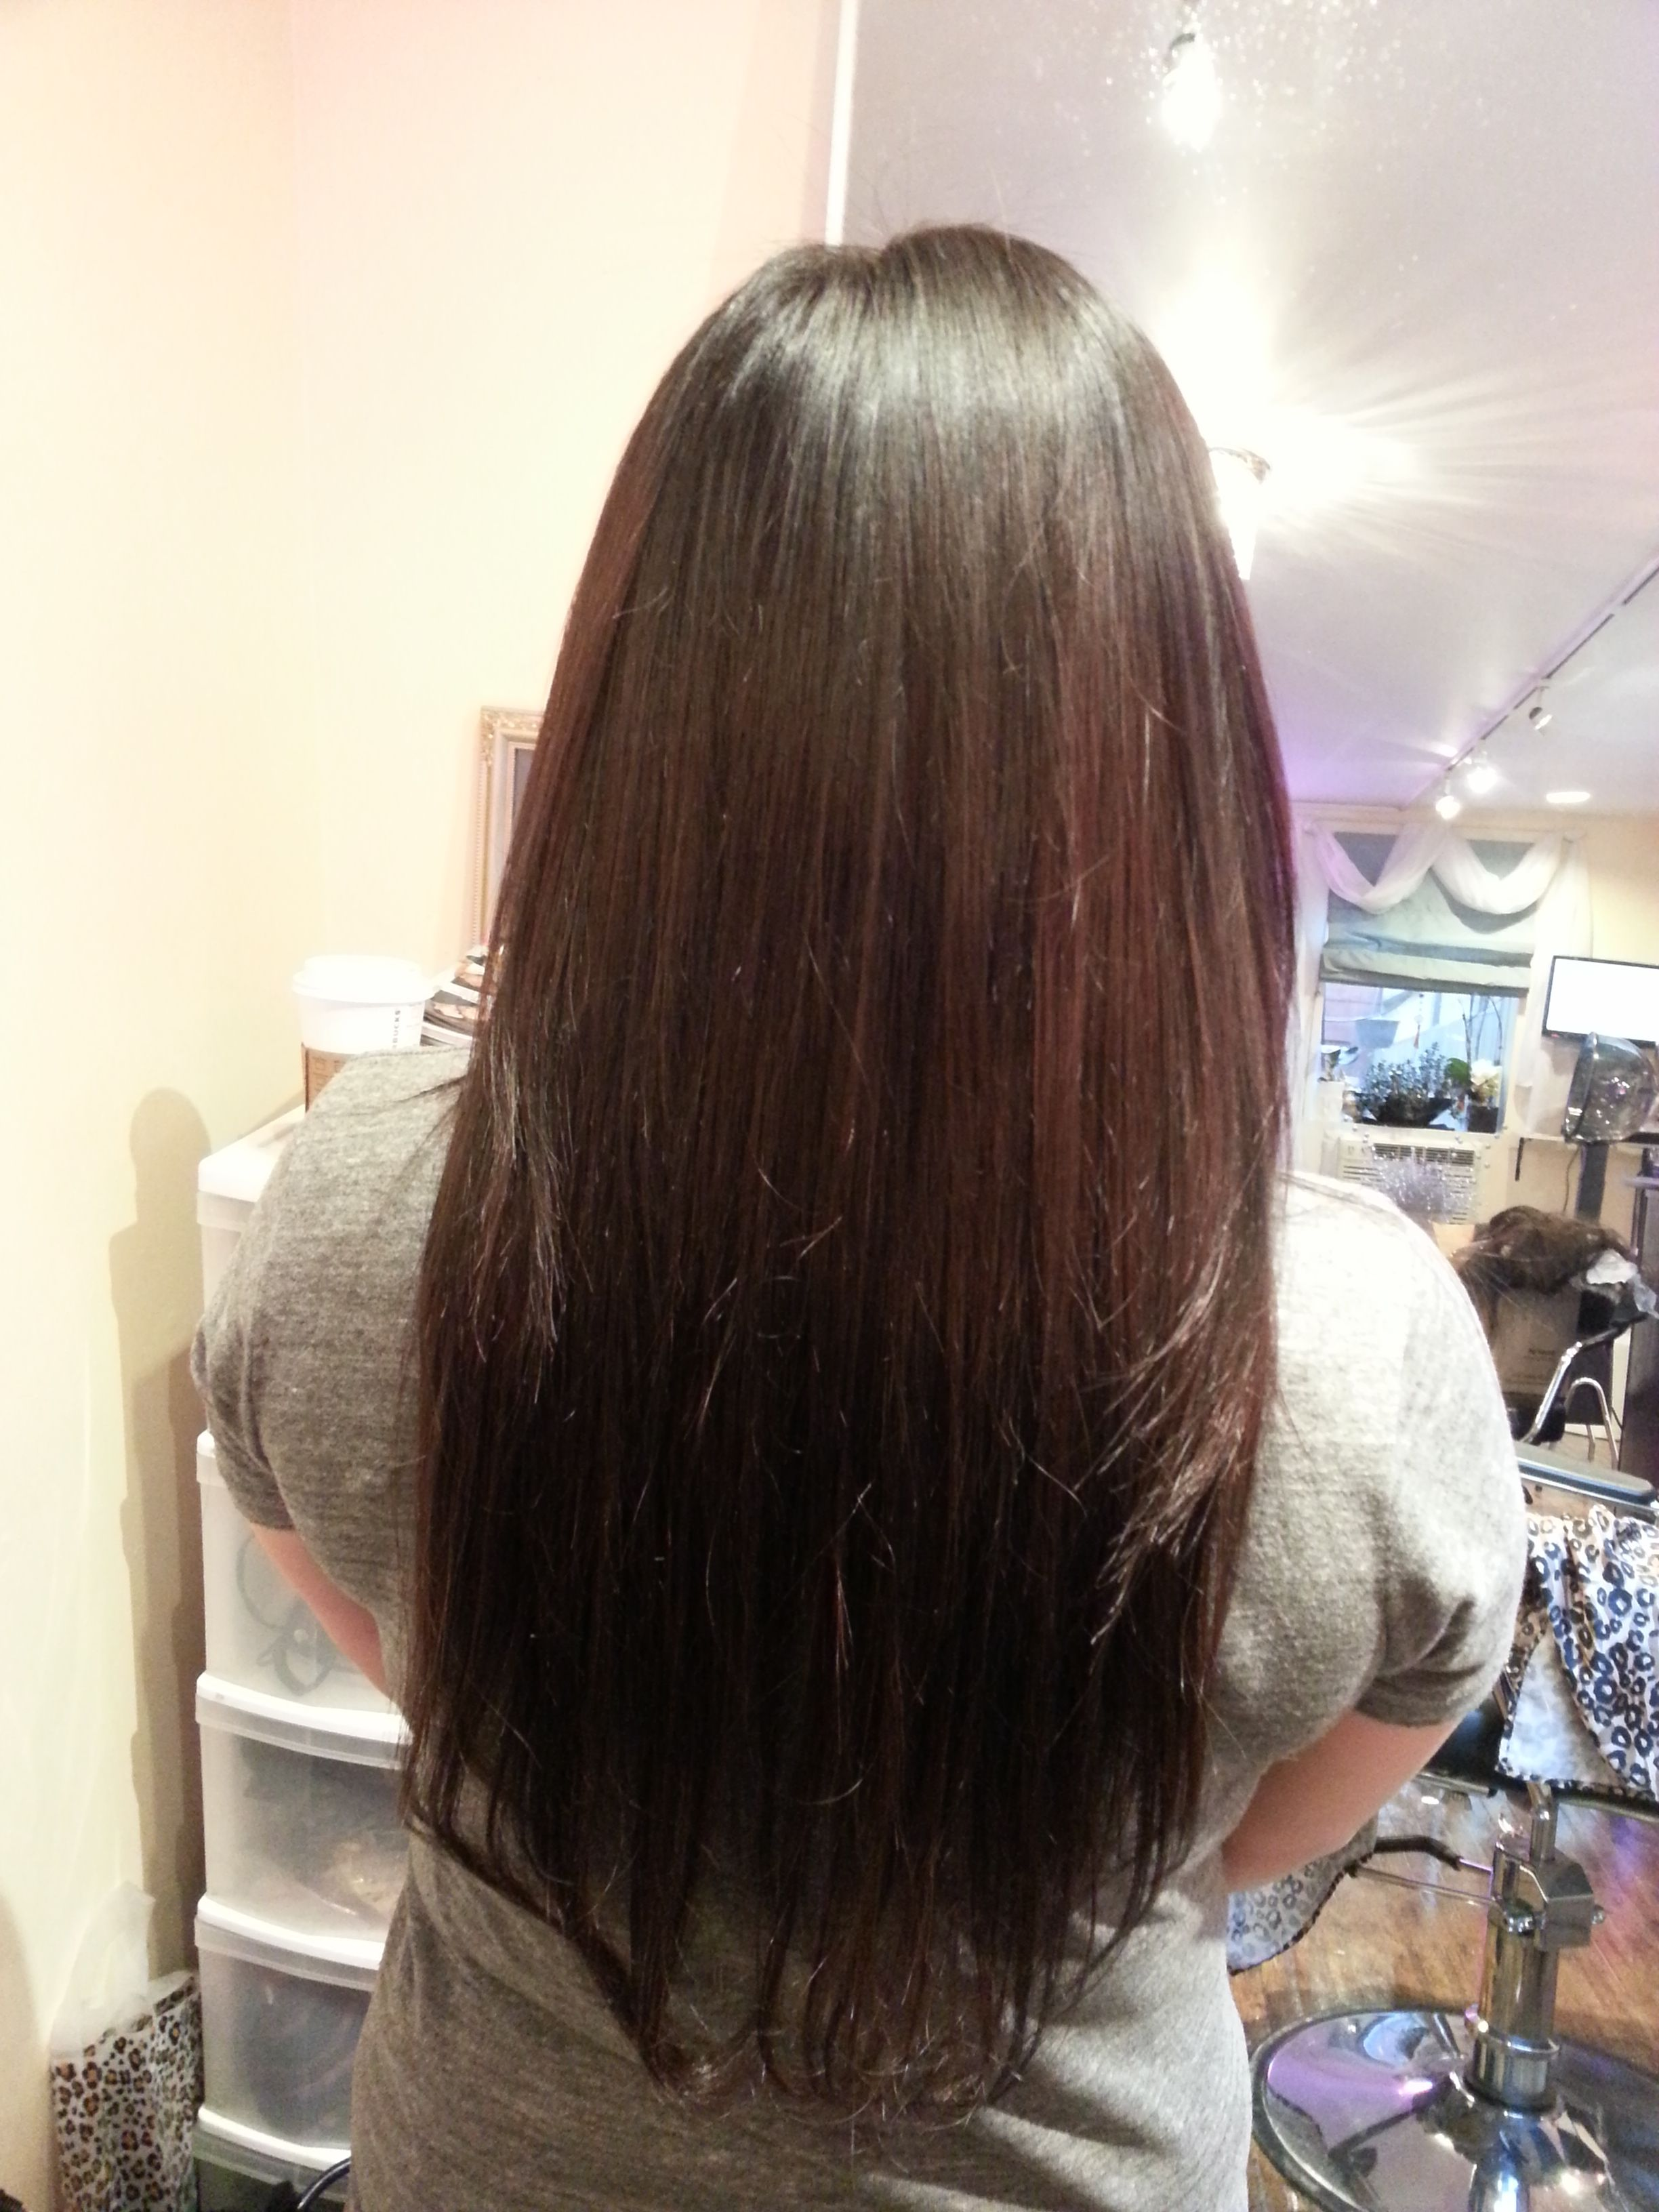 Hot Off The Press Or Client Loves Her New Colour And Extensions